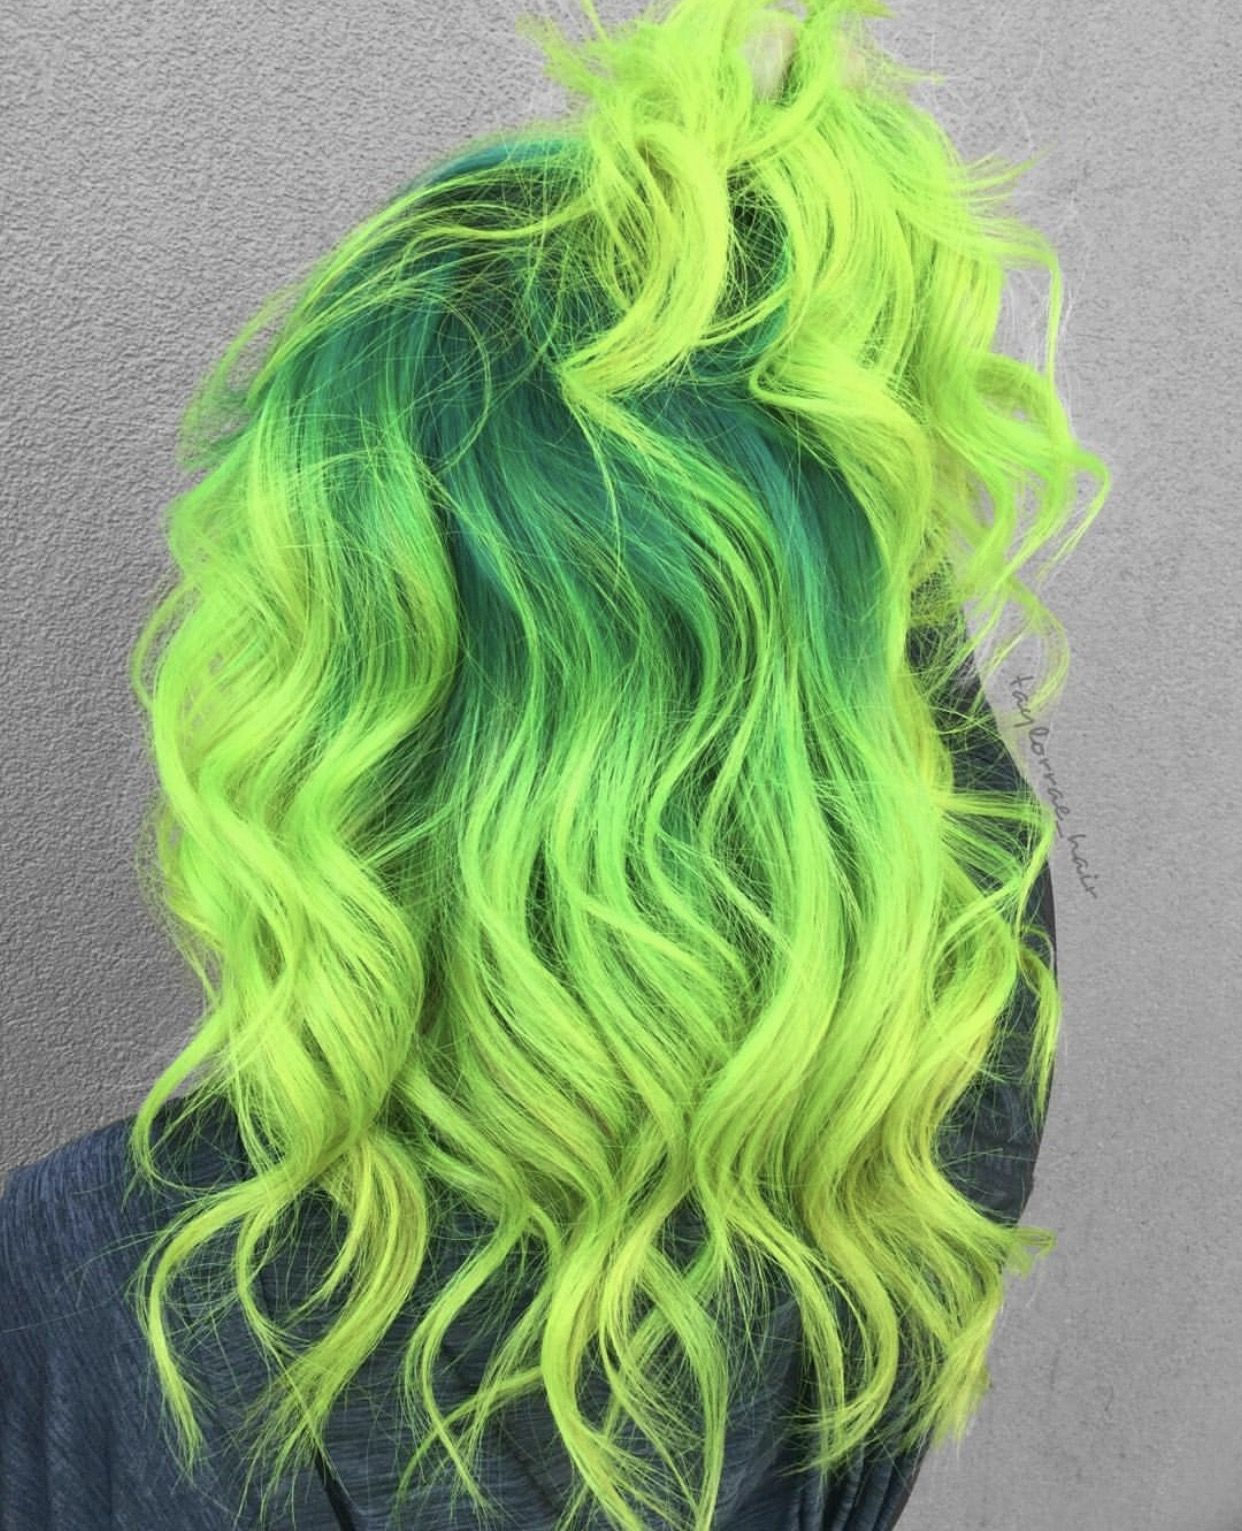 Pin by teal mcmurtry on me in pinterest hair hair styles